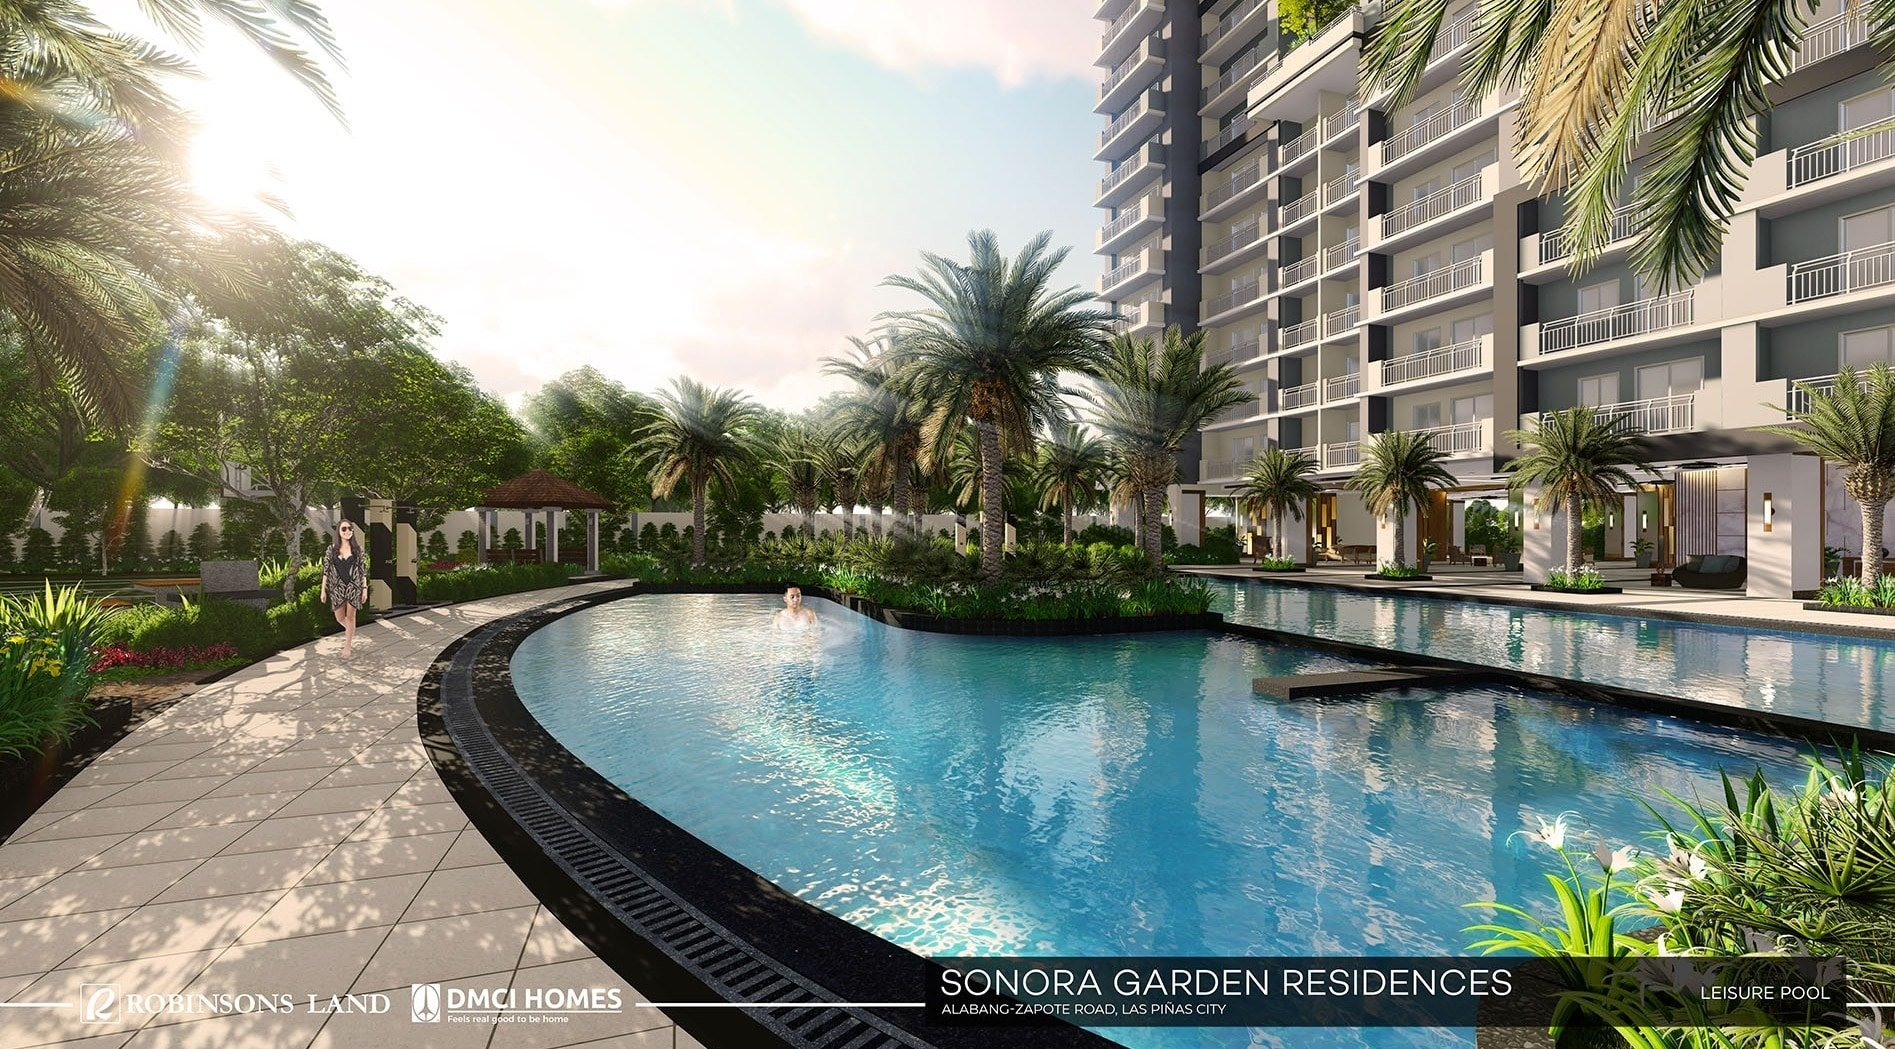 Sonora Garden Residences-Leisure Pool-large